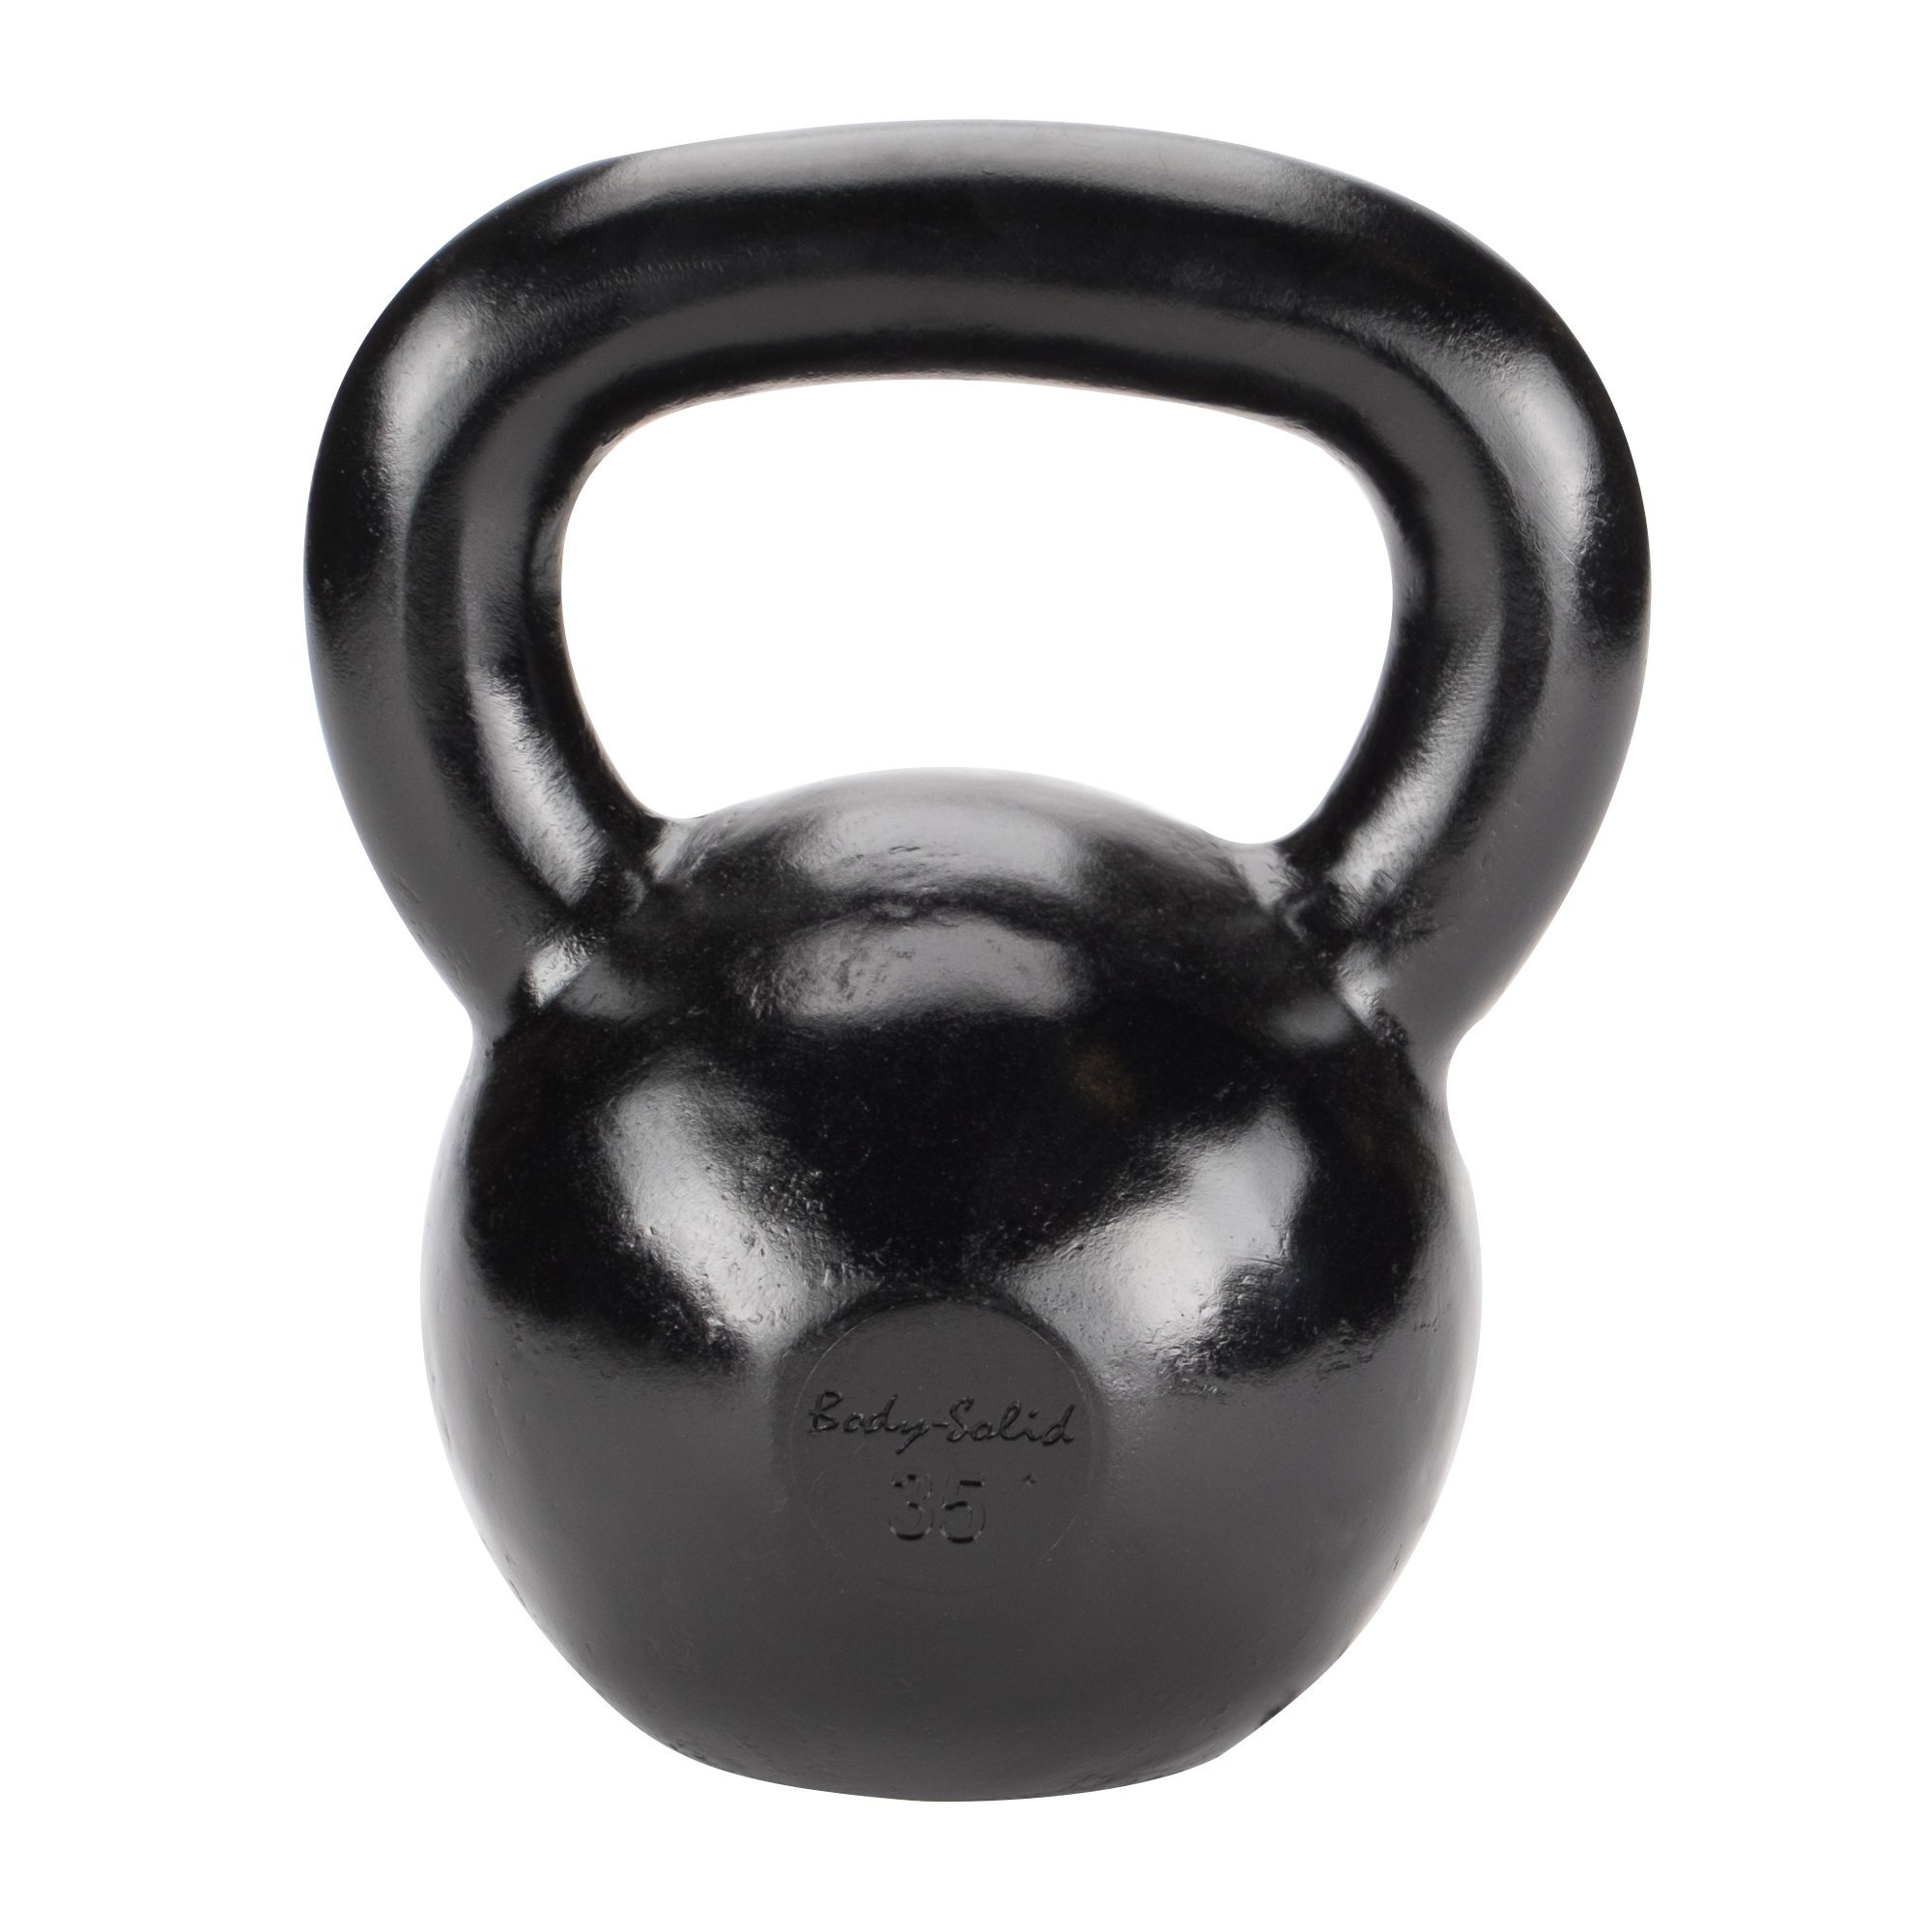 Body-Solid Iron Kettlebells 5-100 lbs. by Body-Solid (Image #1)